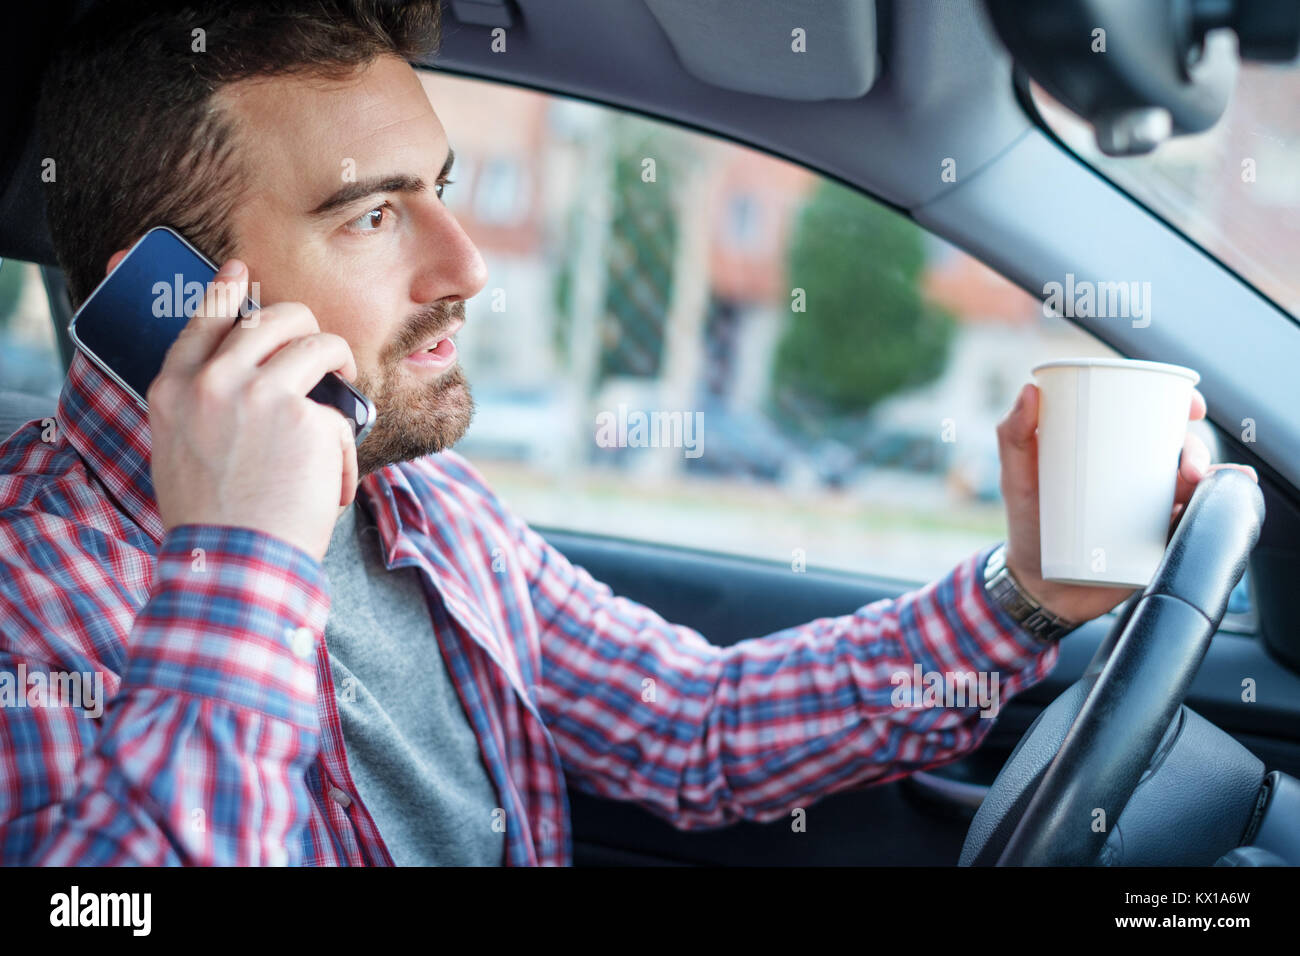 Man driving his car and using mobile phone - Stock Image